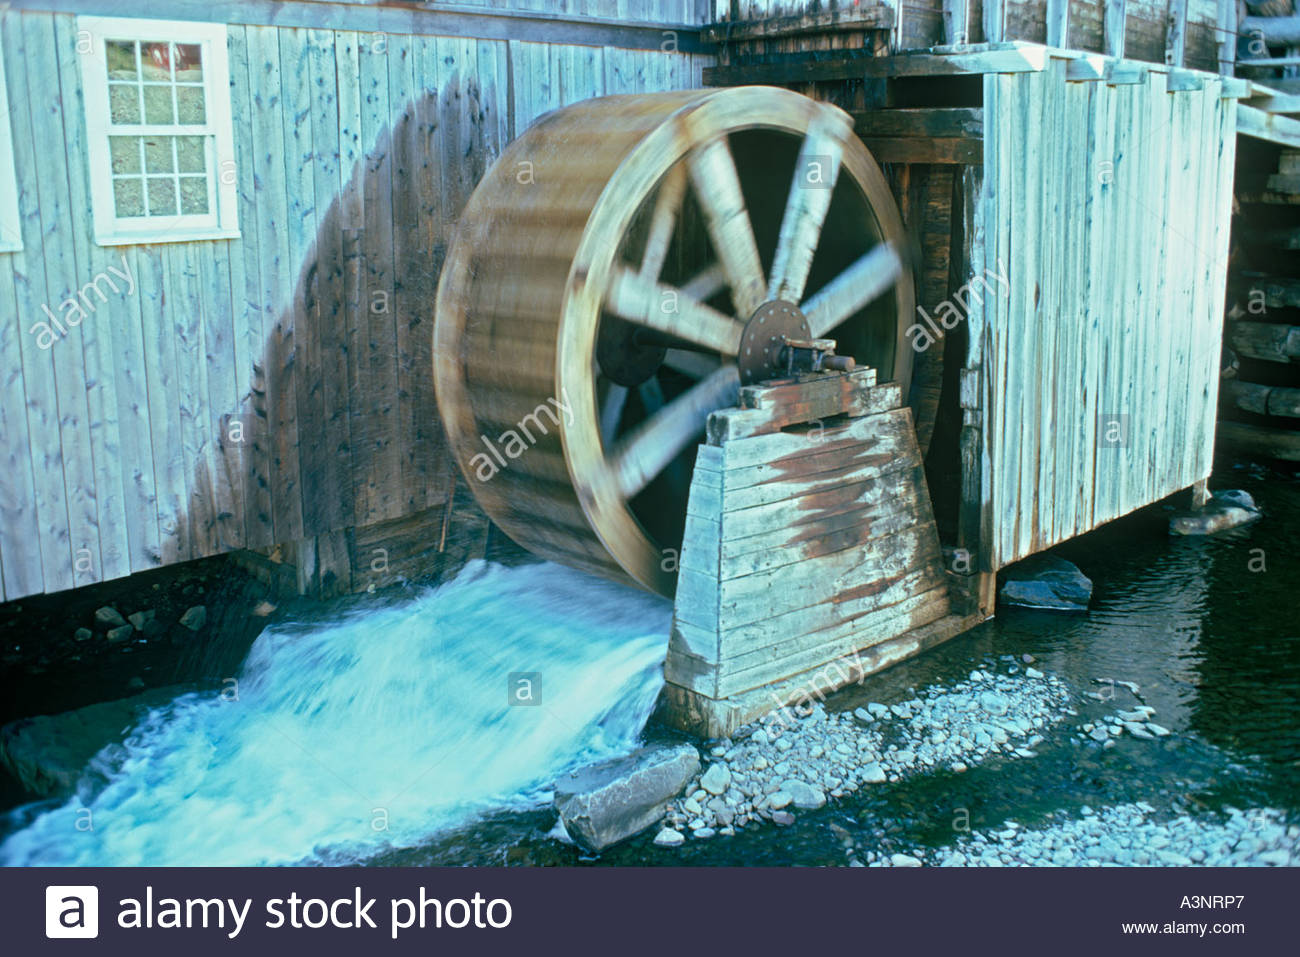 undershot-water-wheel-of-mcdonald-brothe